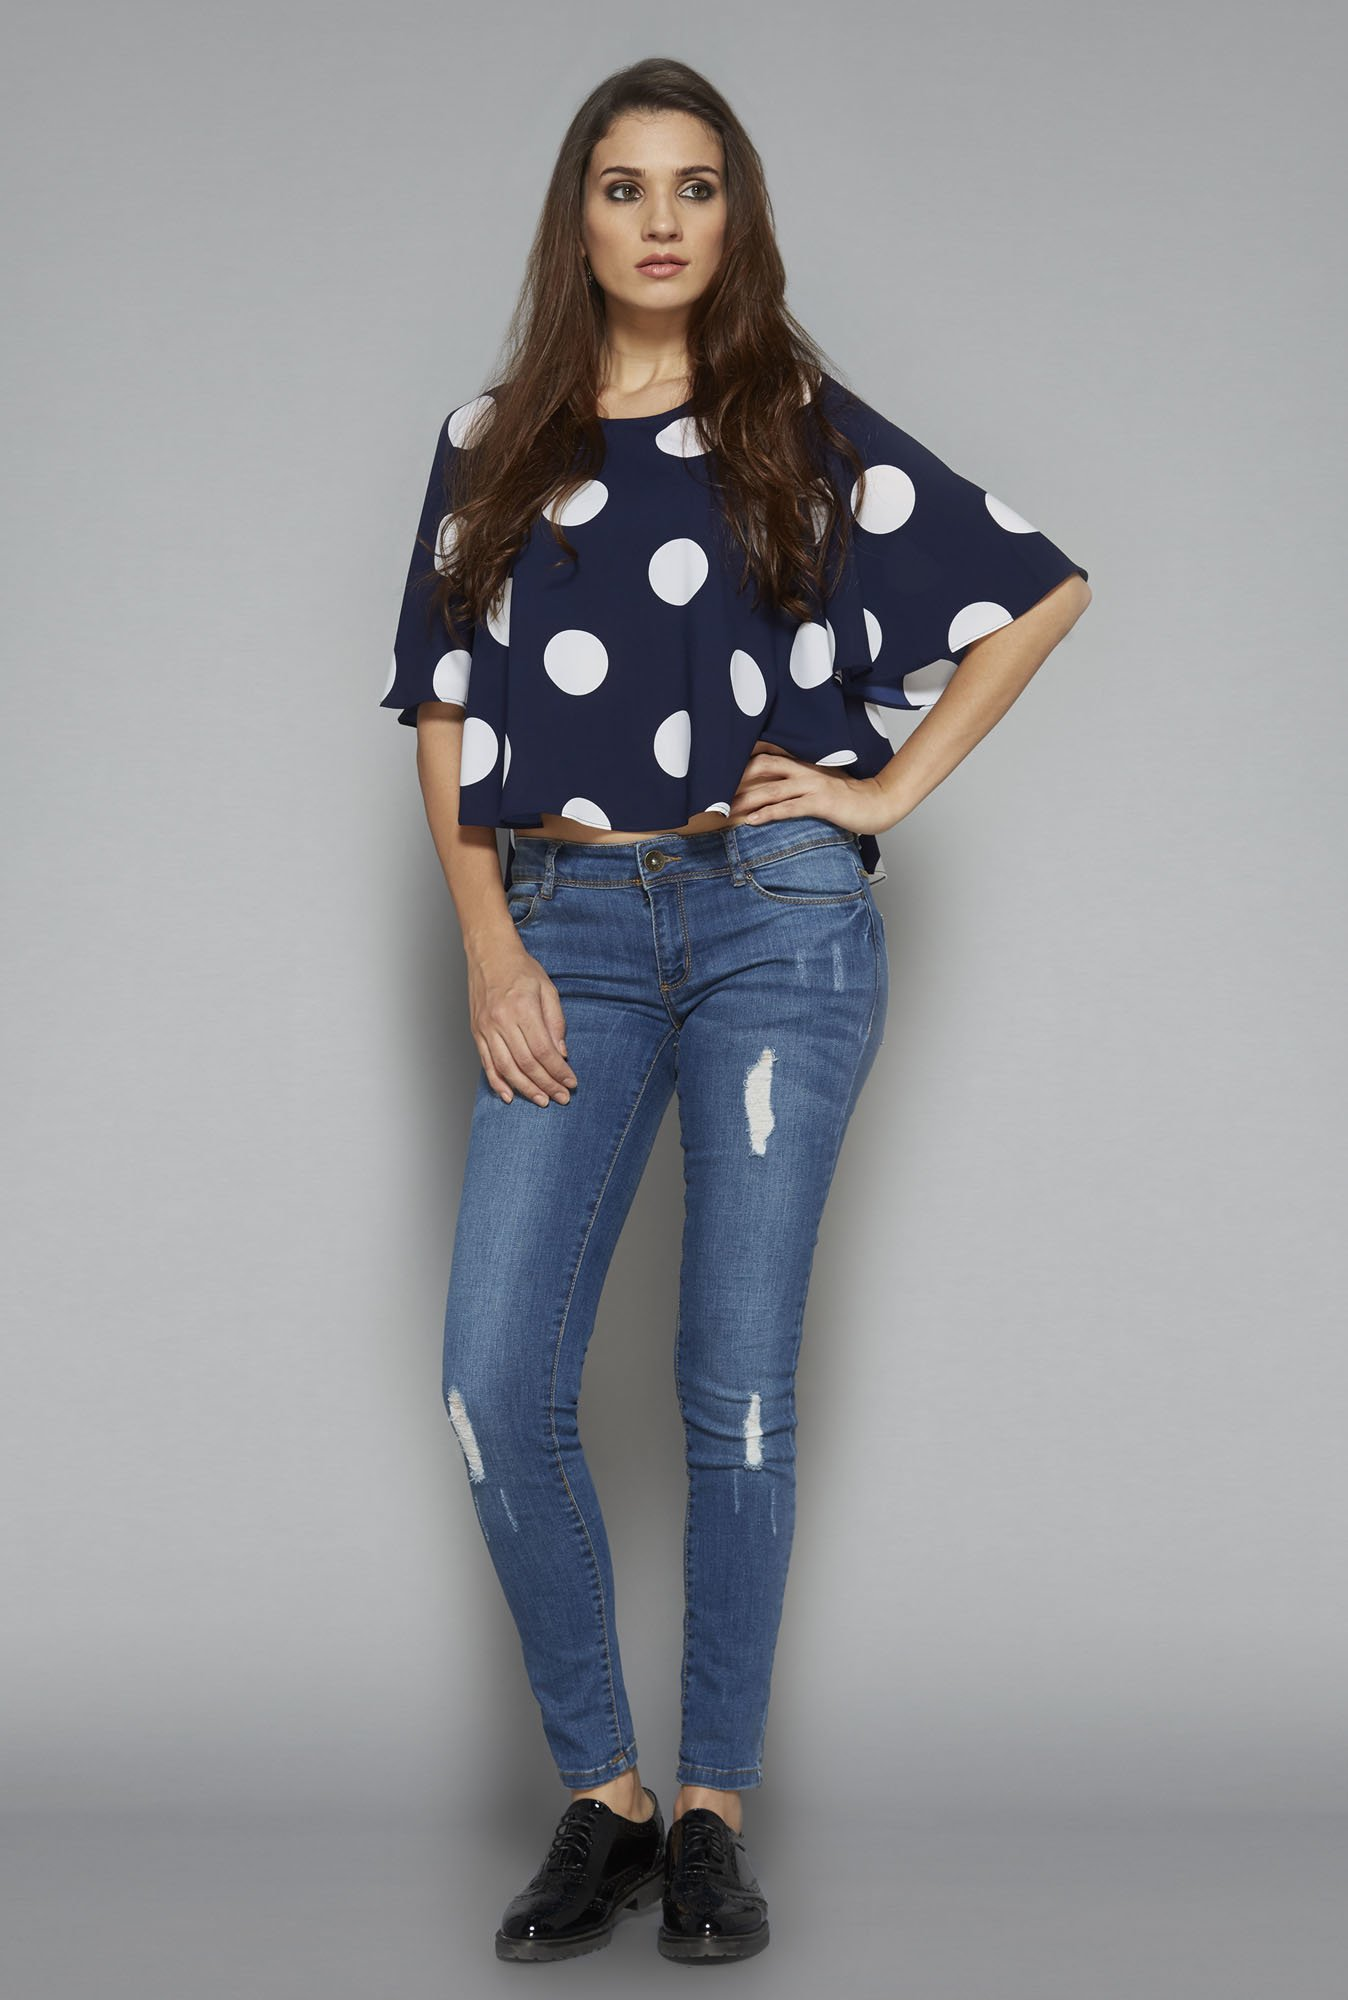 Nuon by Westside Navy Polka Dot Blouse